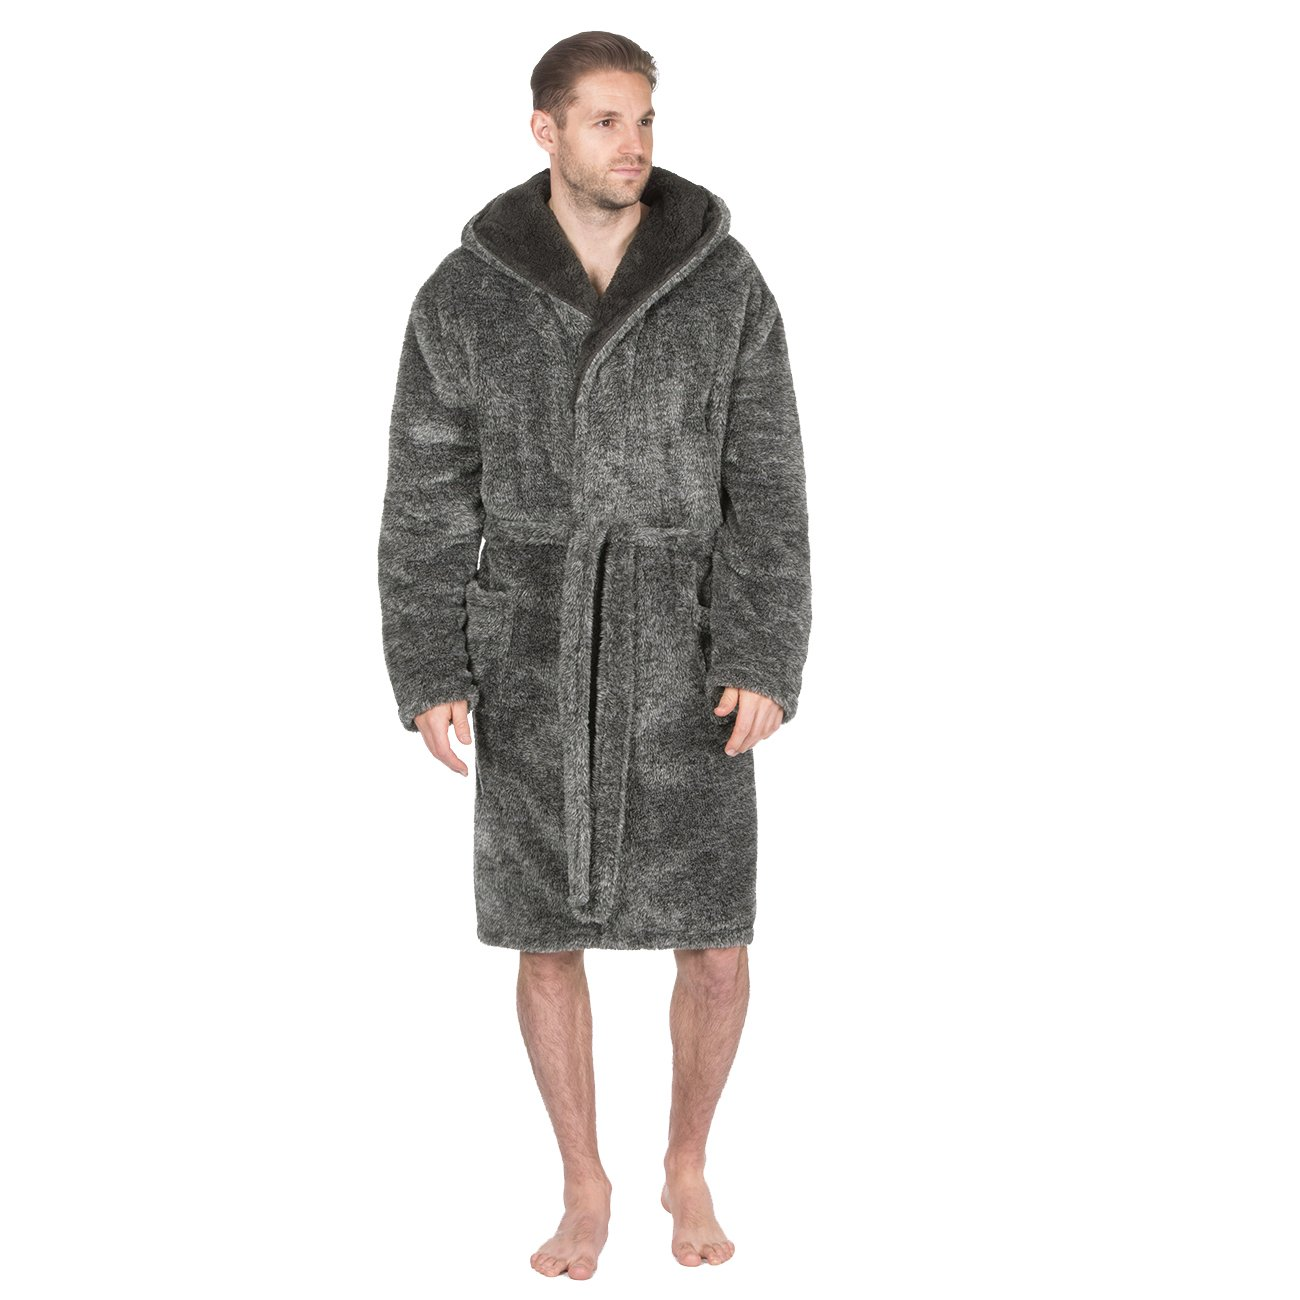 Pierre Roche Mens 2 Tone Snuggle Fleece Dressing Gown - Hooded Robe With Pockets